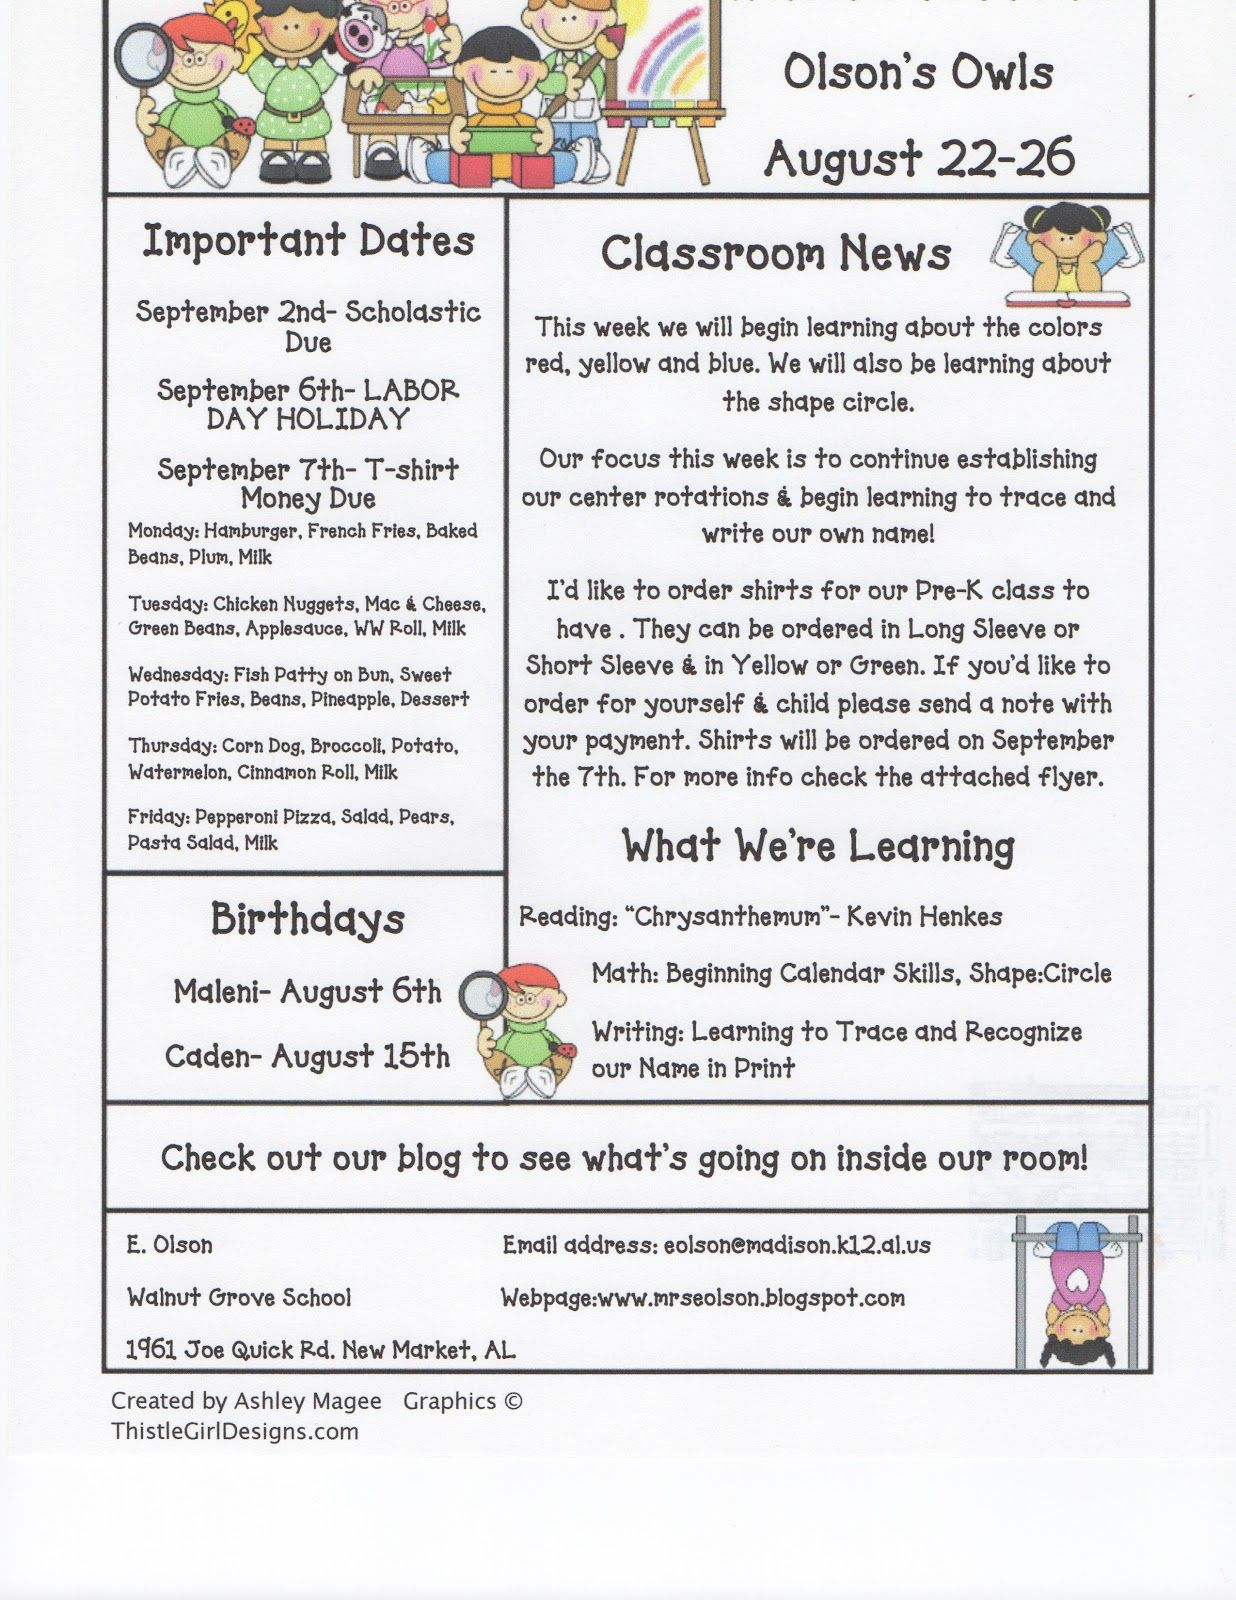 December School Newsletter Ideas Click On The Image To